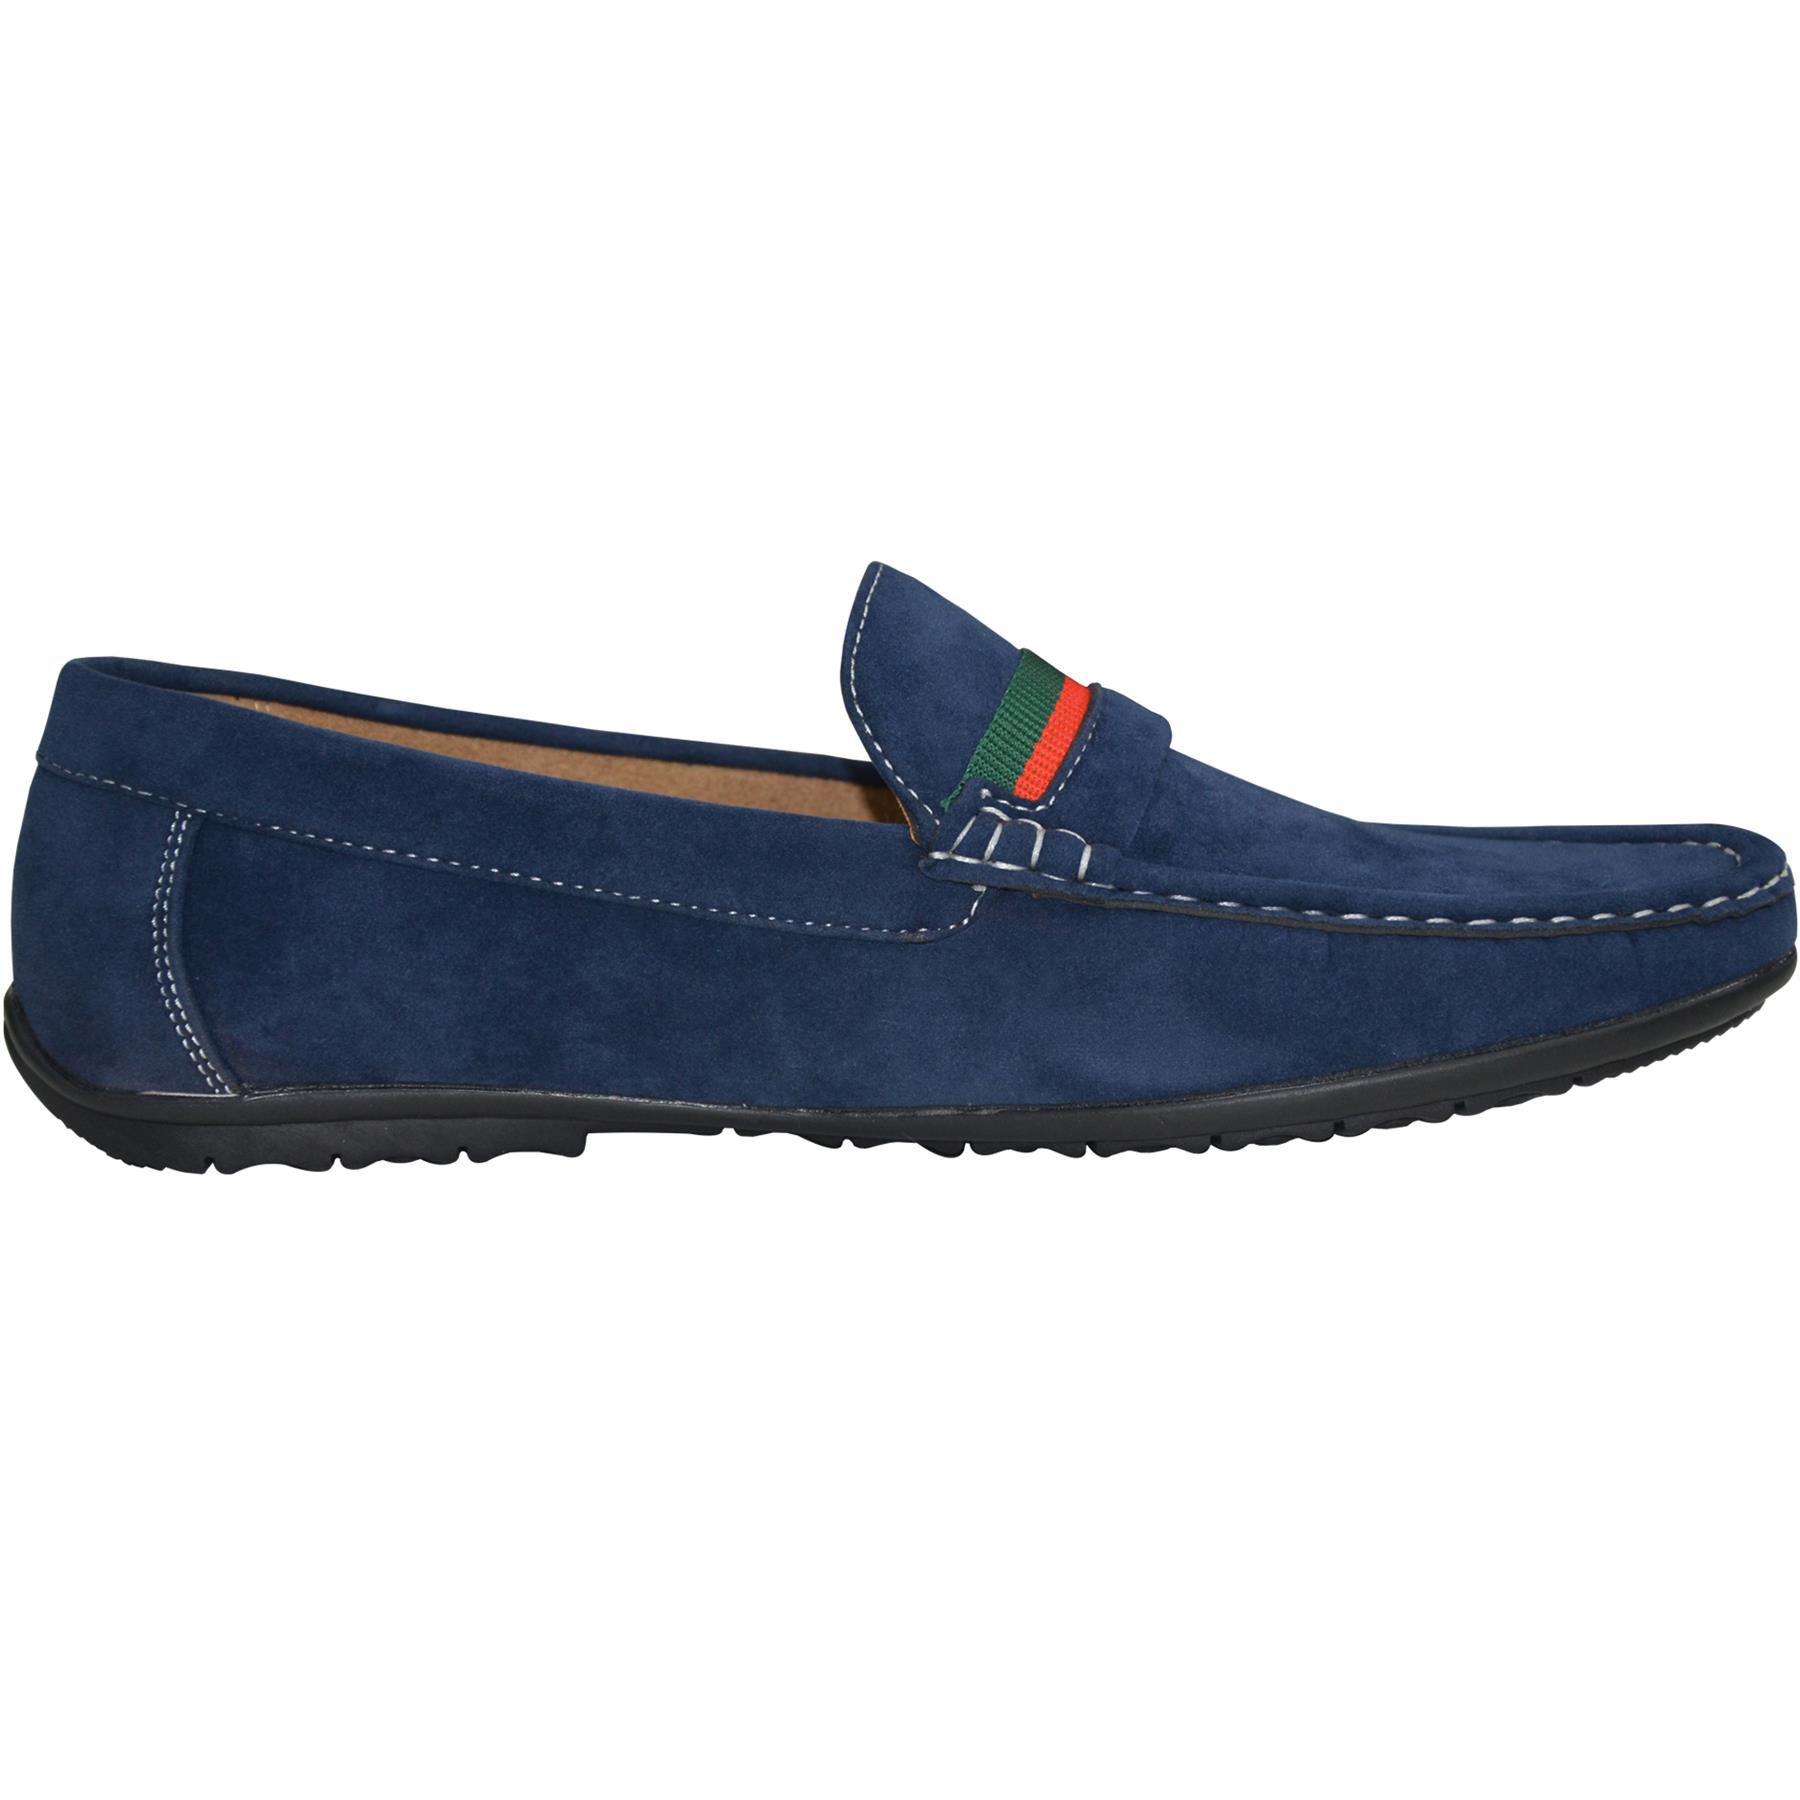 Mens-Slip-Ons-Shoes-Boat-Deck-Driving-Smart-Buckle-Moccasins-Suede-Look-Loafers thumbnail 35